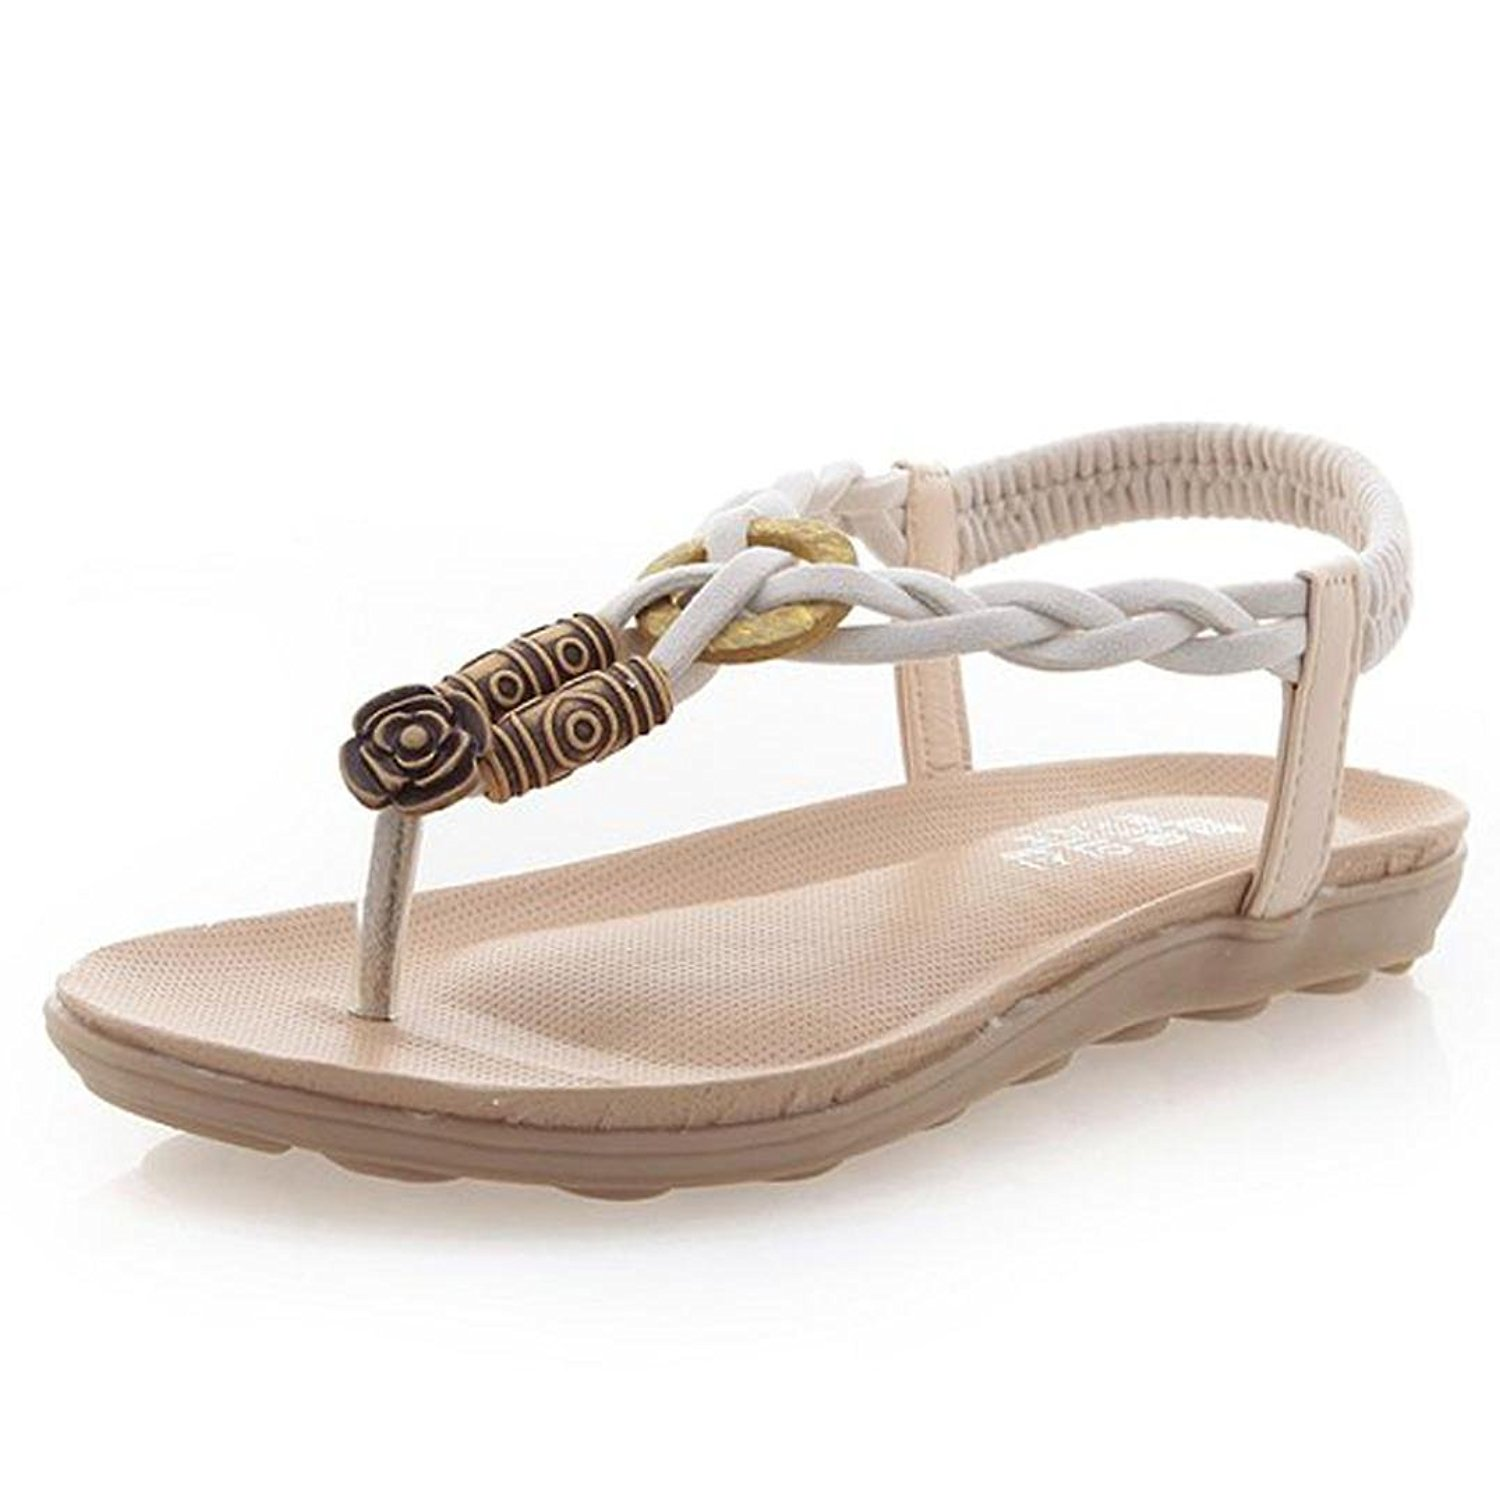 DEESEE(TM) Women Summer Bohemia Sweet Beaded Sandals Clip Toe Sandals Beach Shoes (US:6.5, Beige)